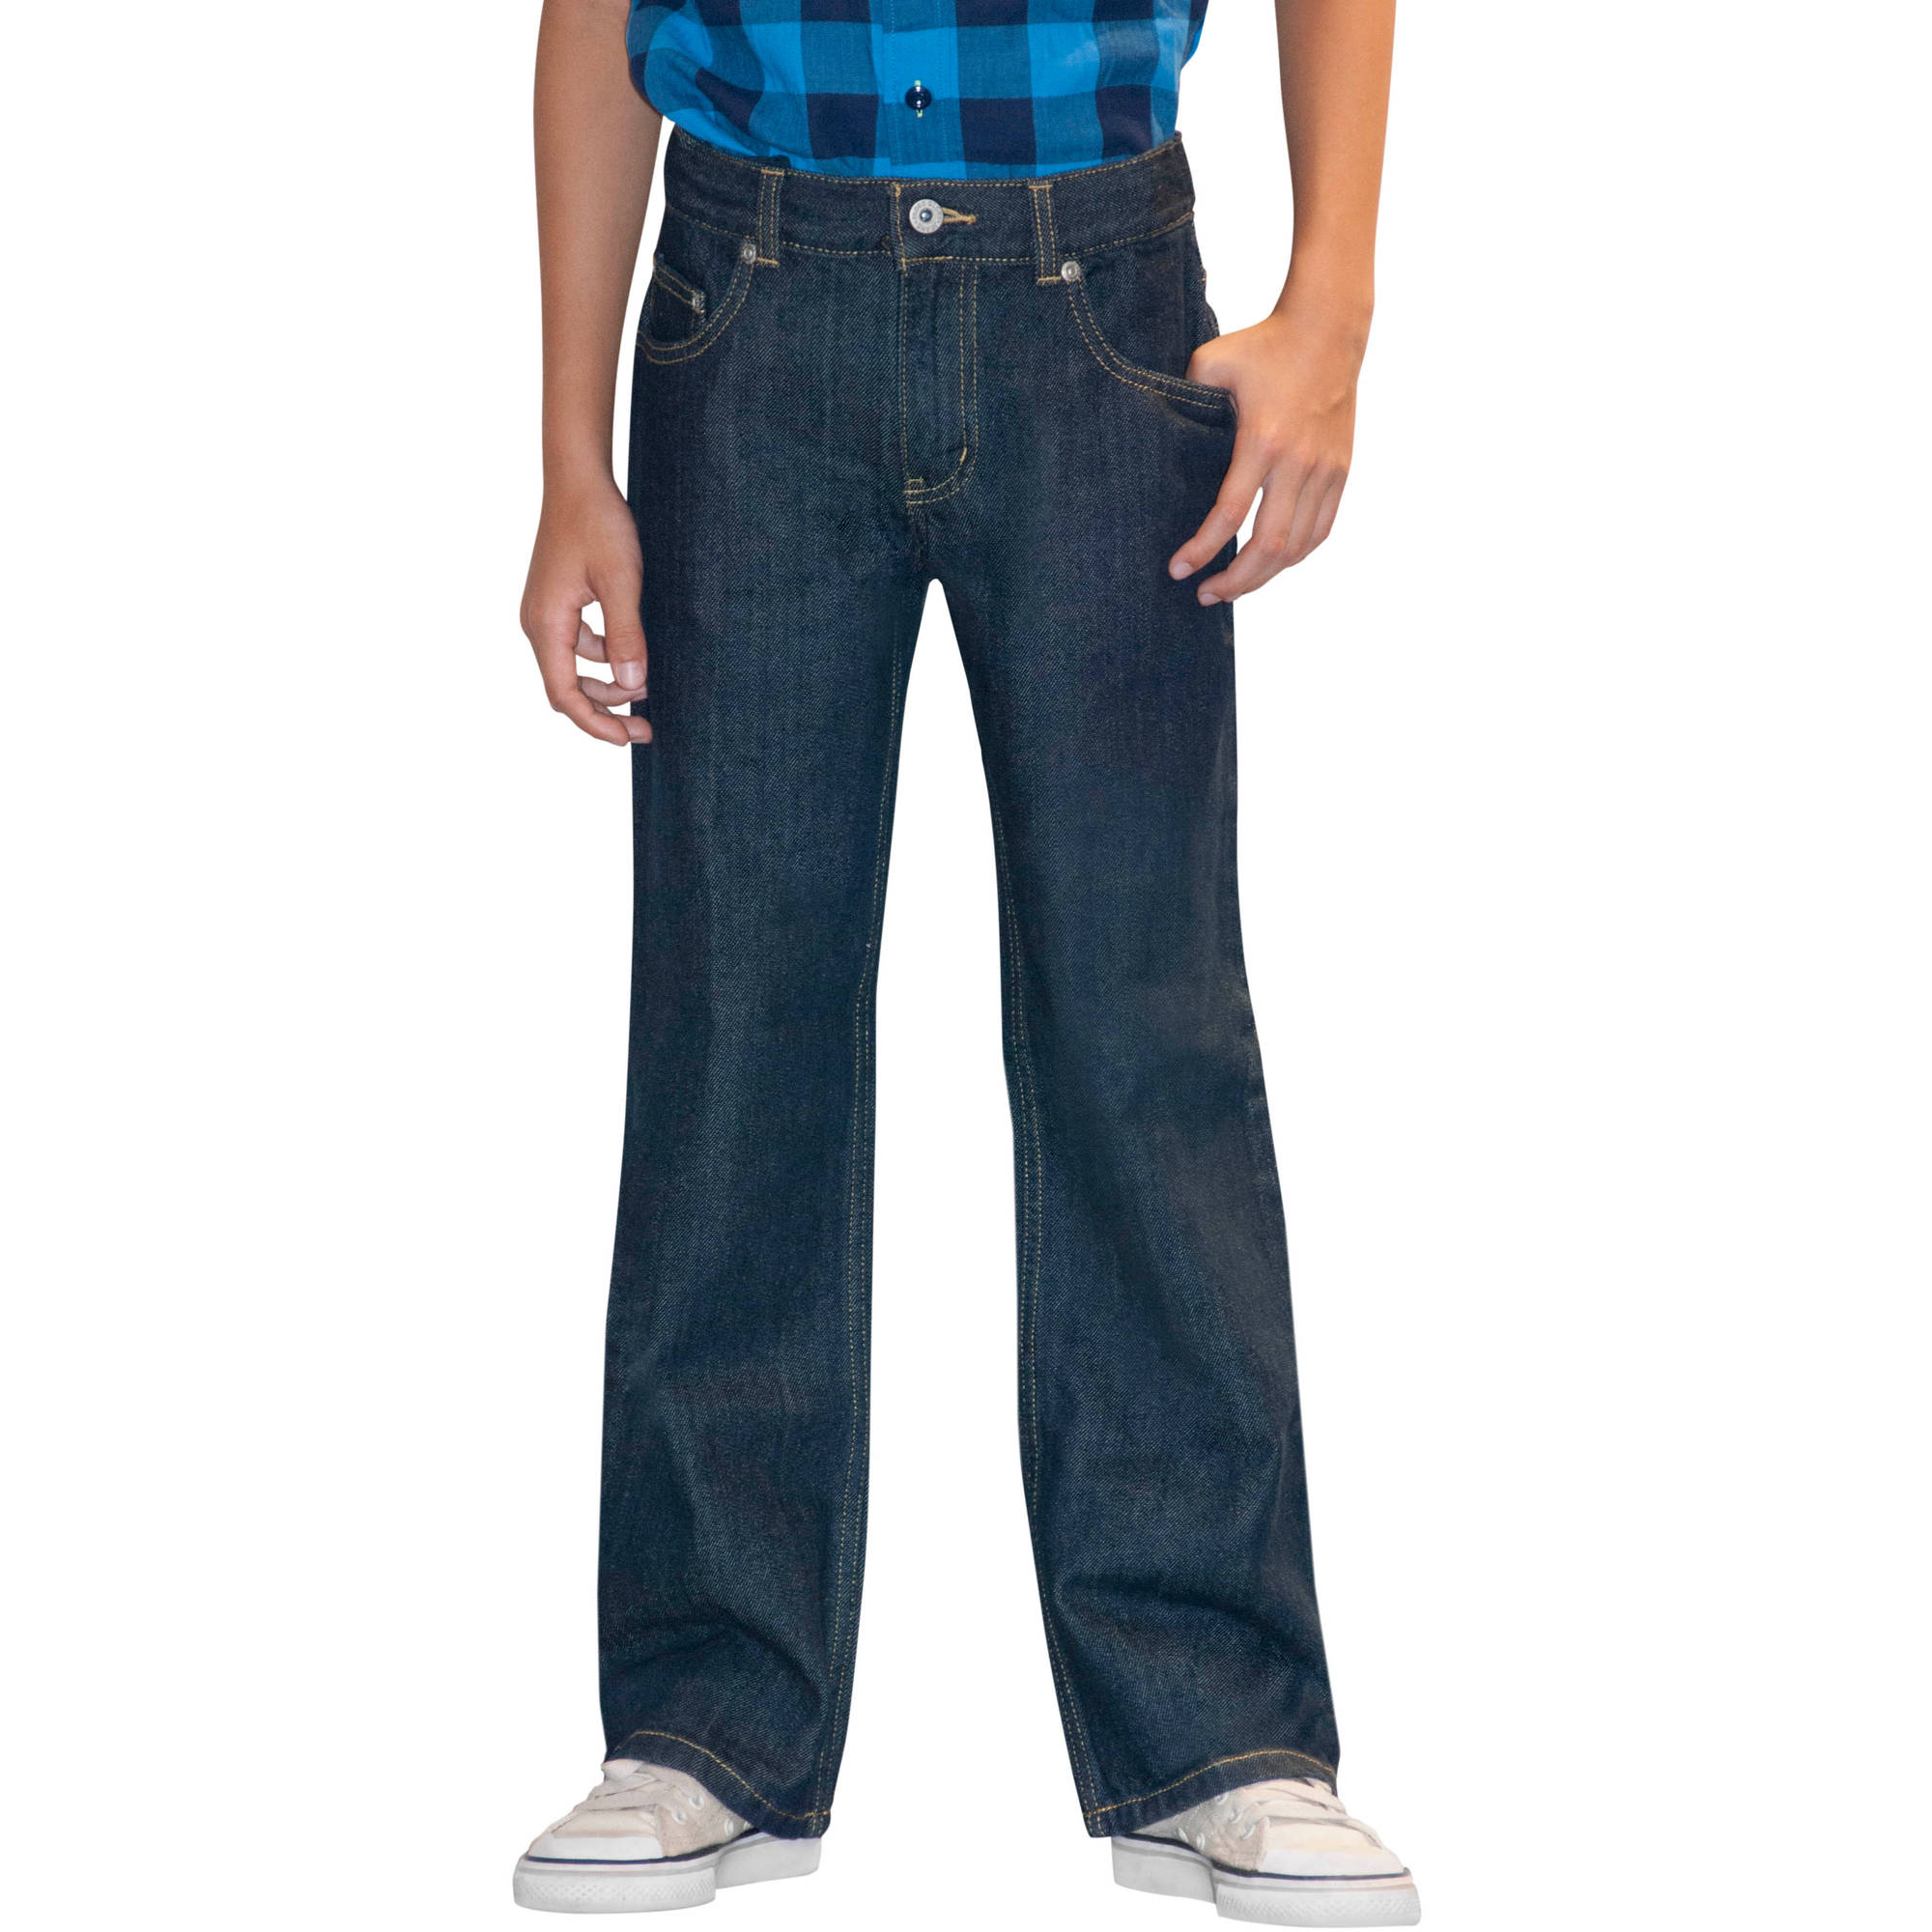 Faded Glory Boys' Bootcut Jeans